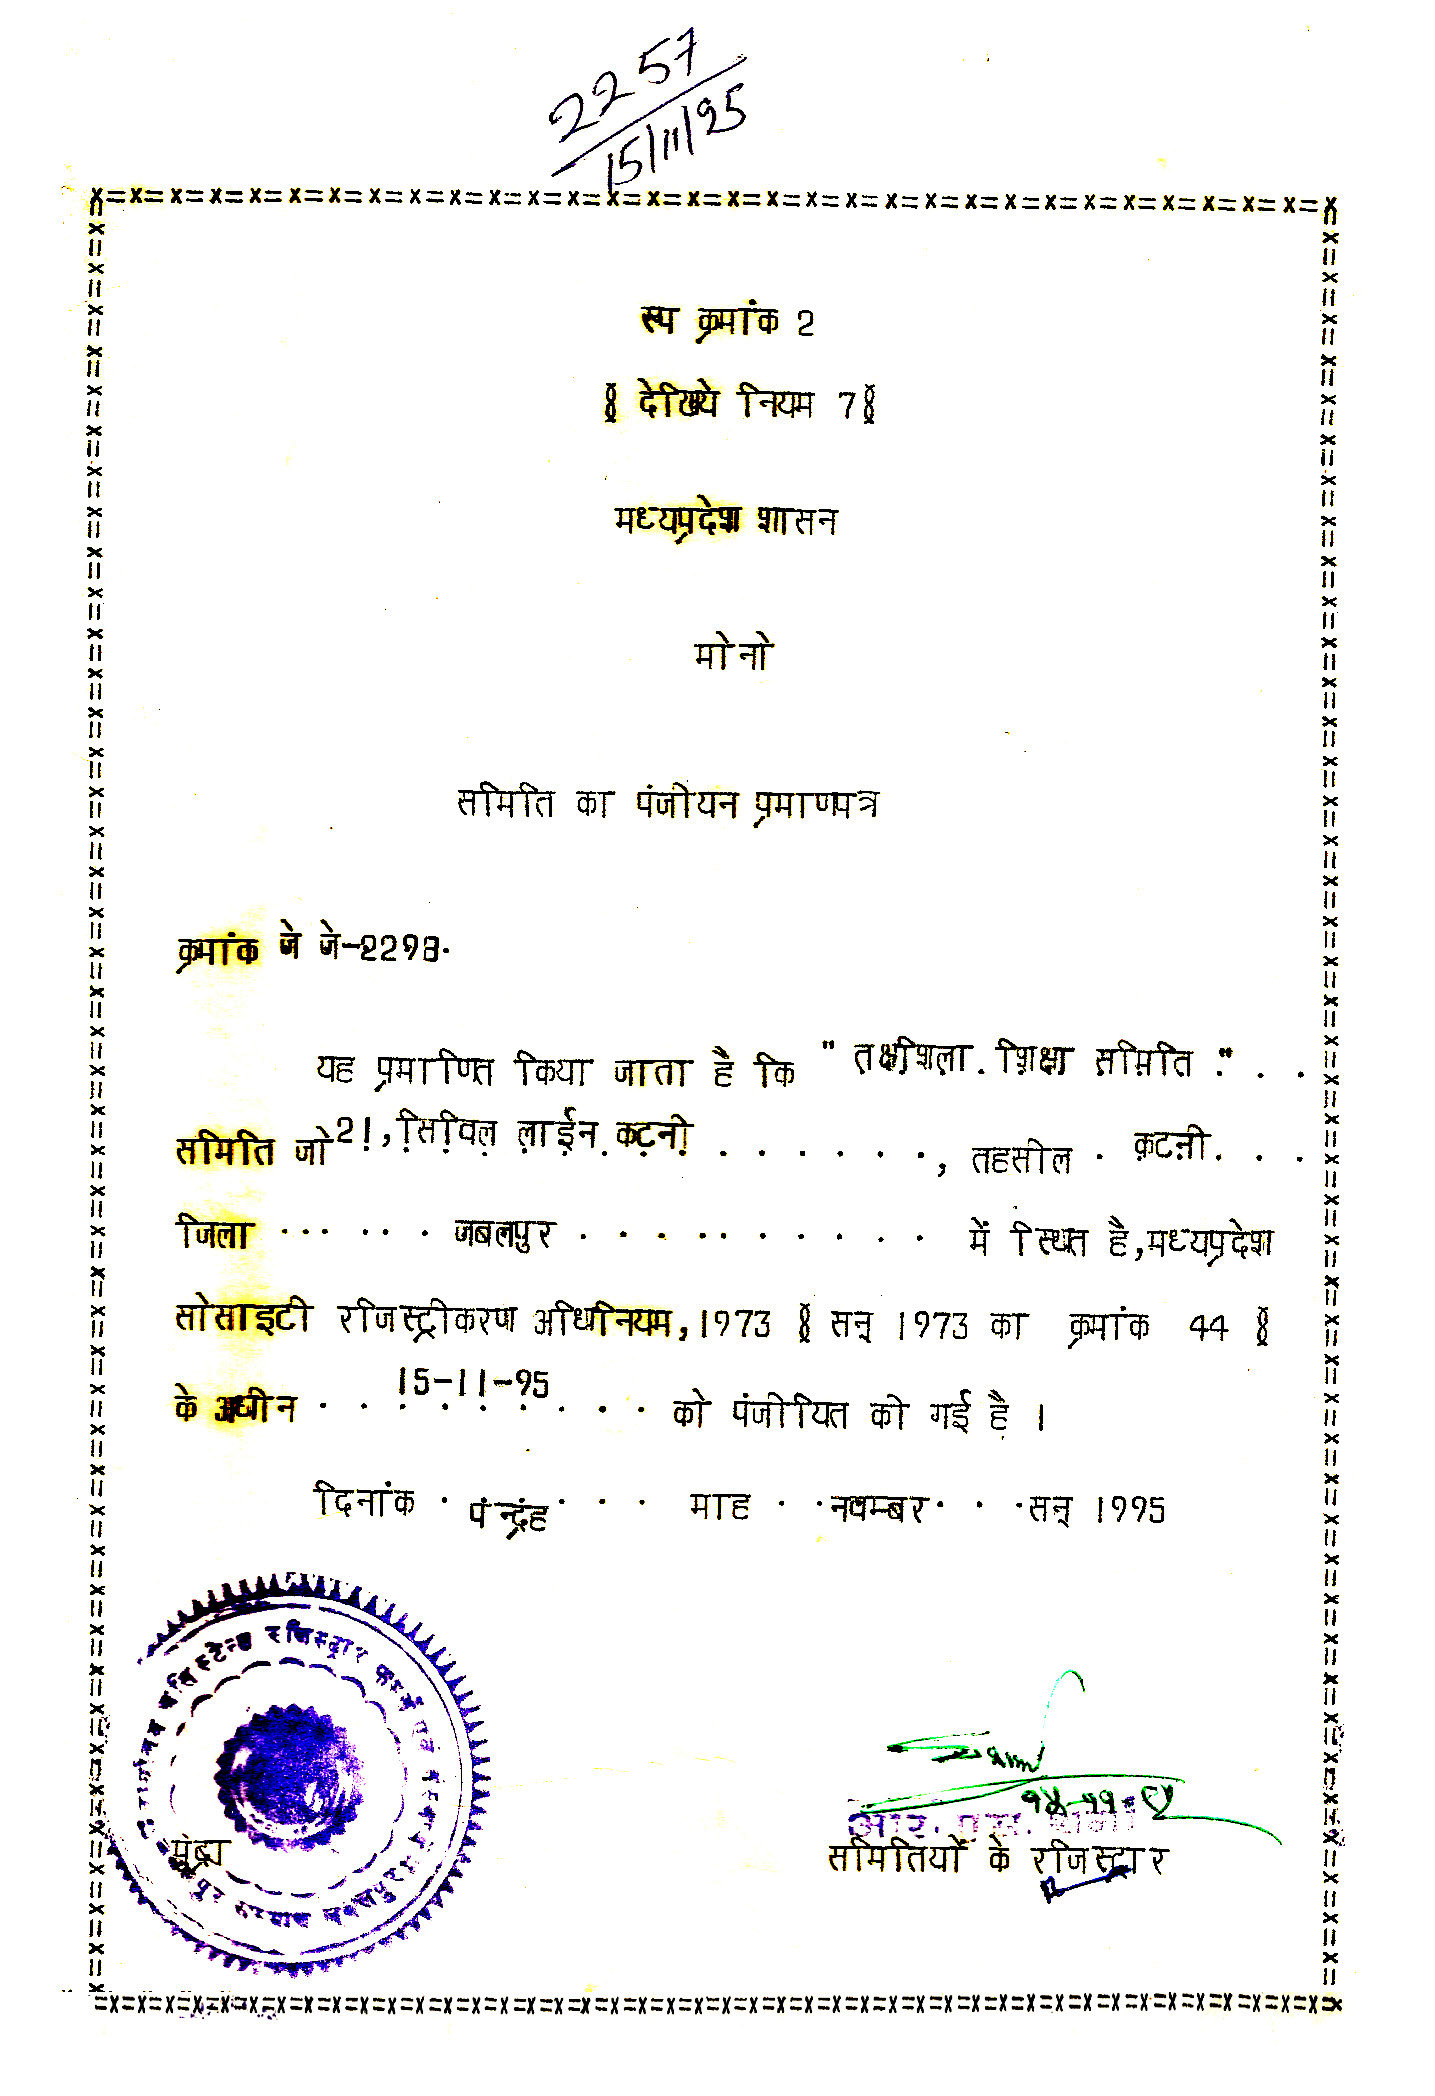 Registration Certificate of Society